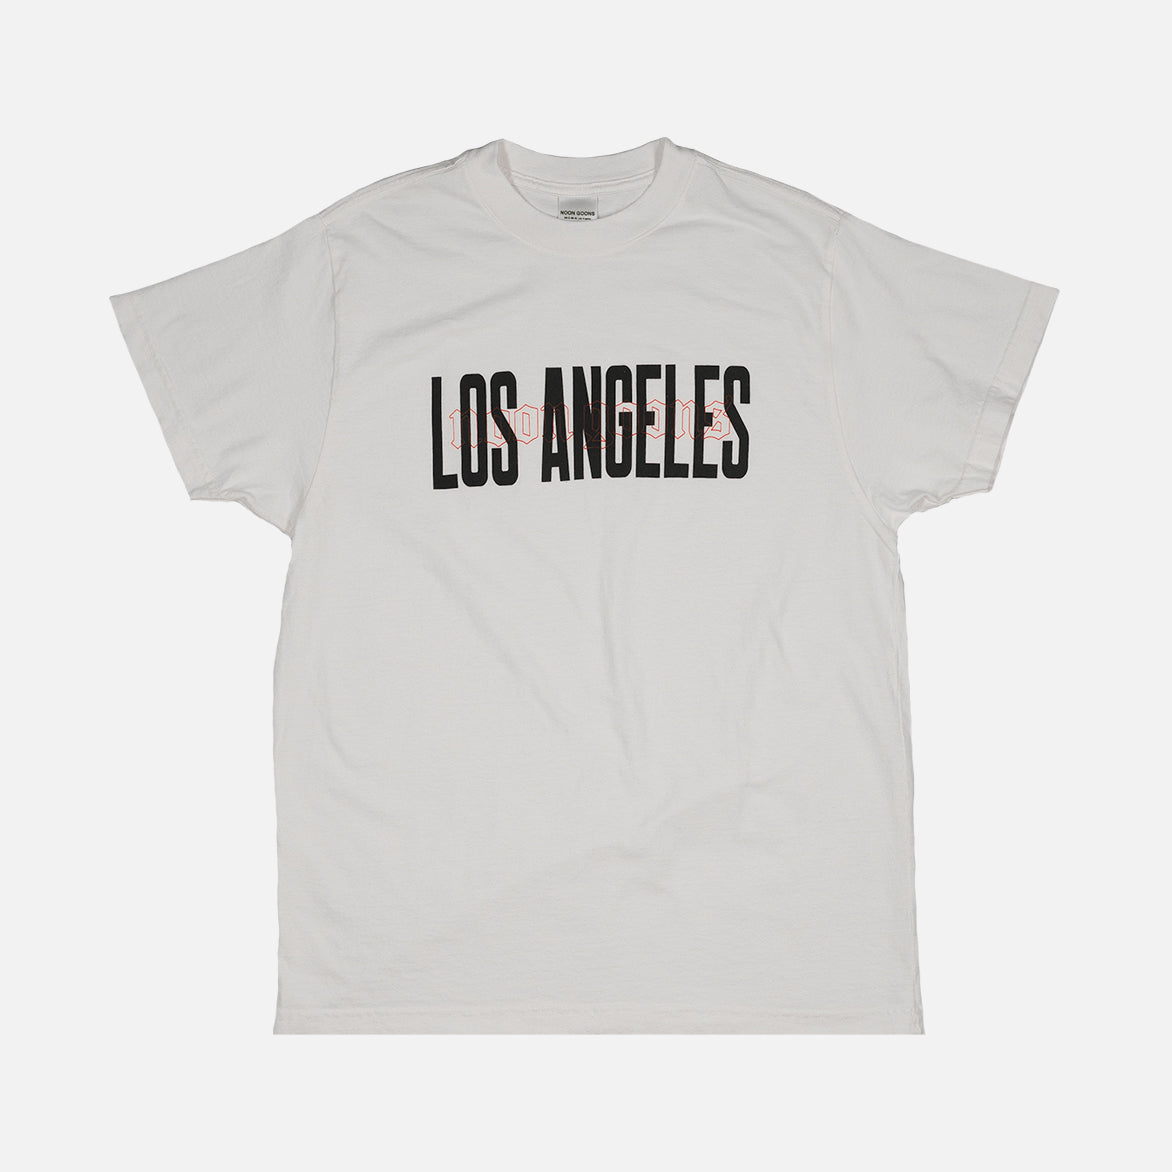 NOON GOONS IS LOS ANGELES TEE - WHITE